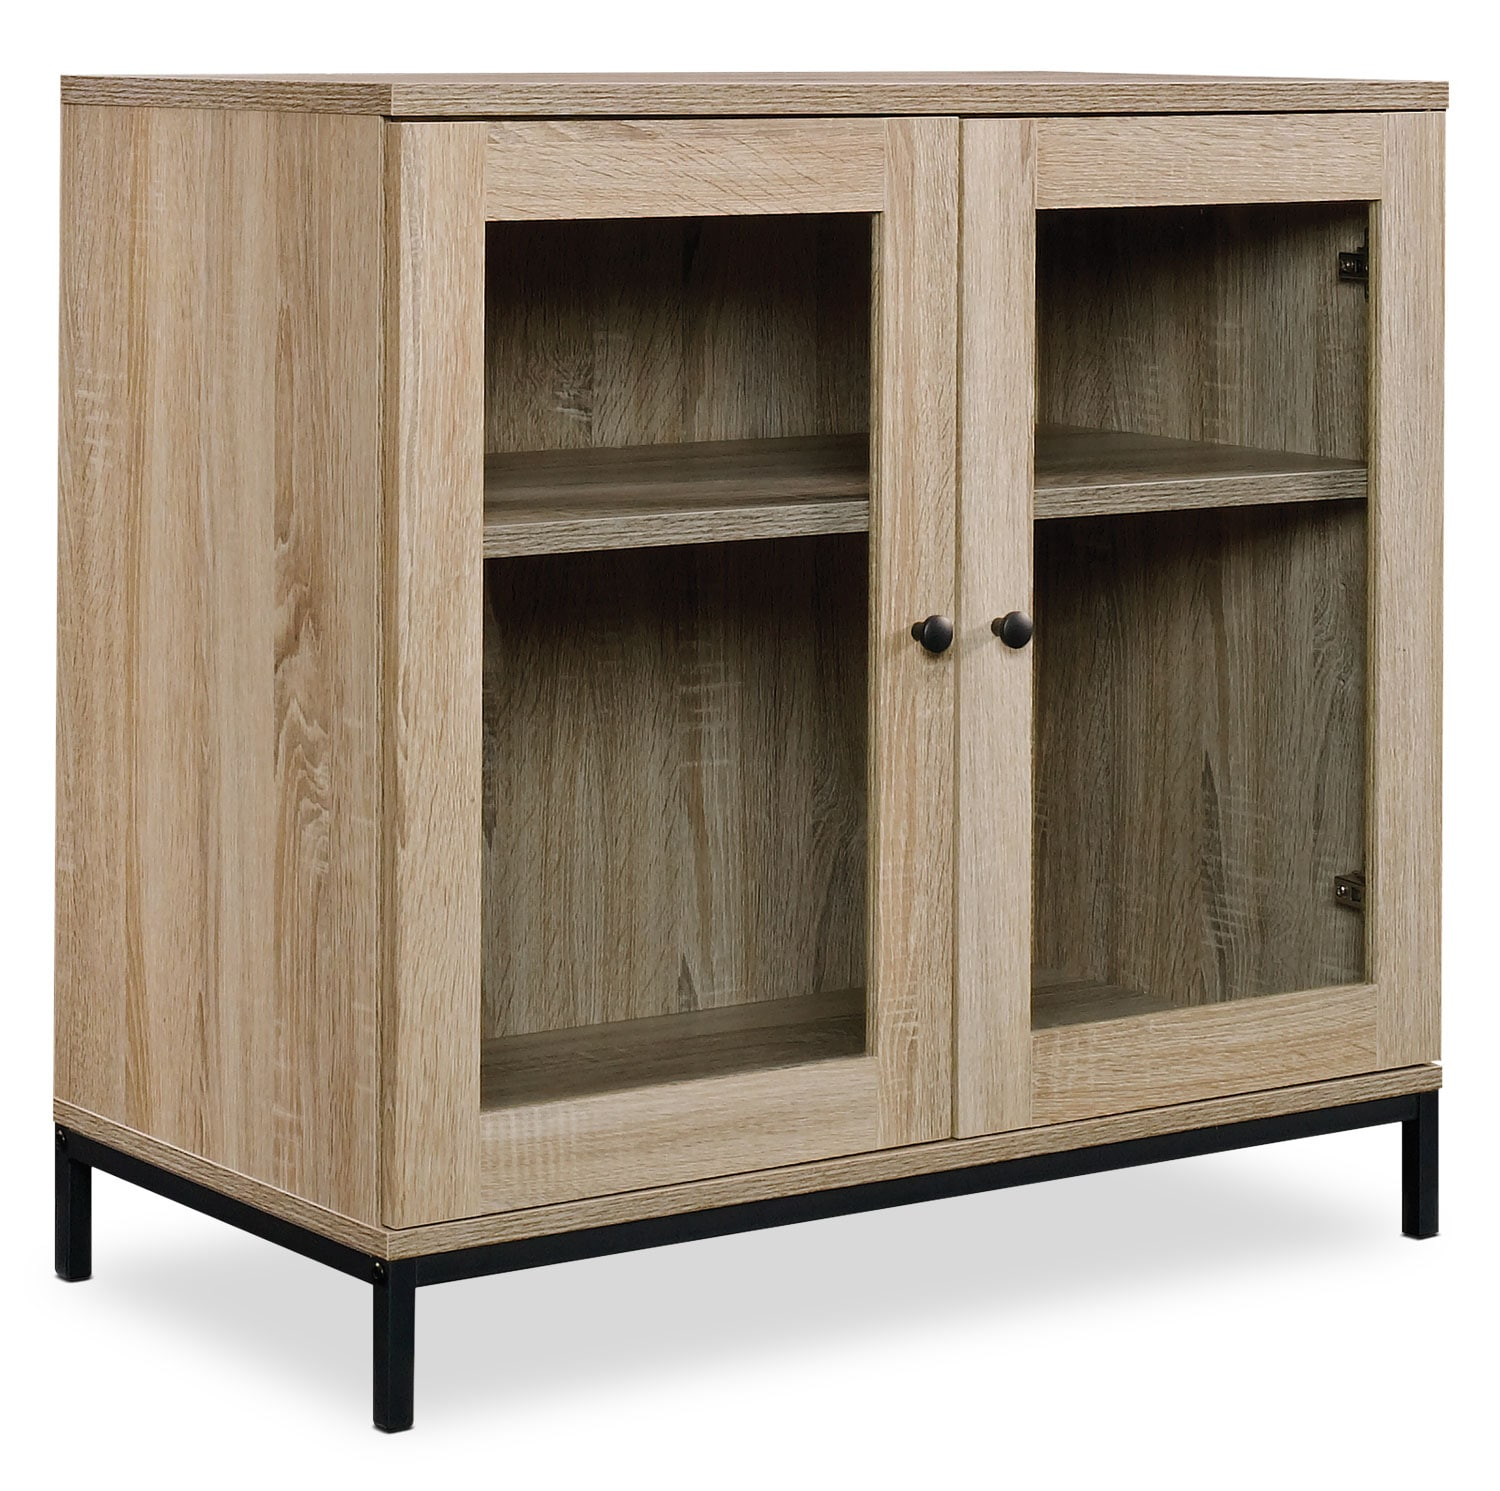 "North Avenue 32"" TV Stand with Doors"